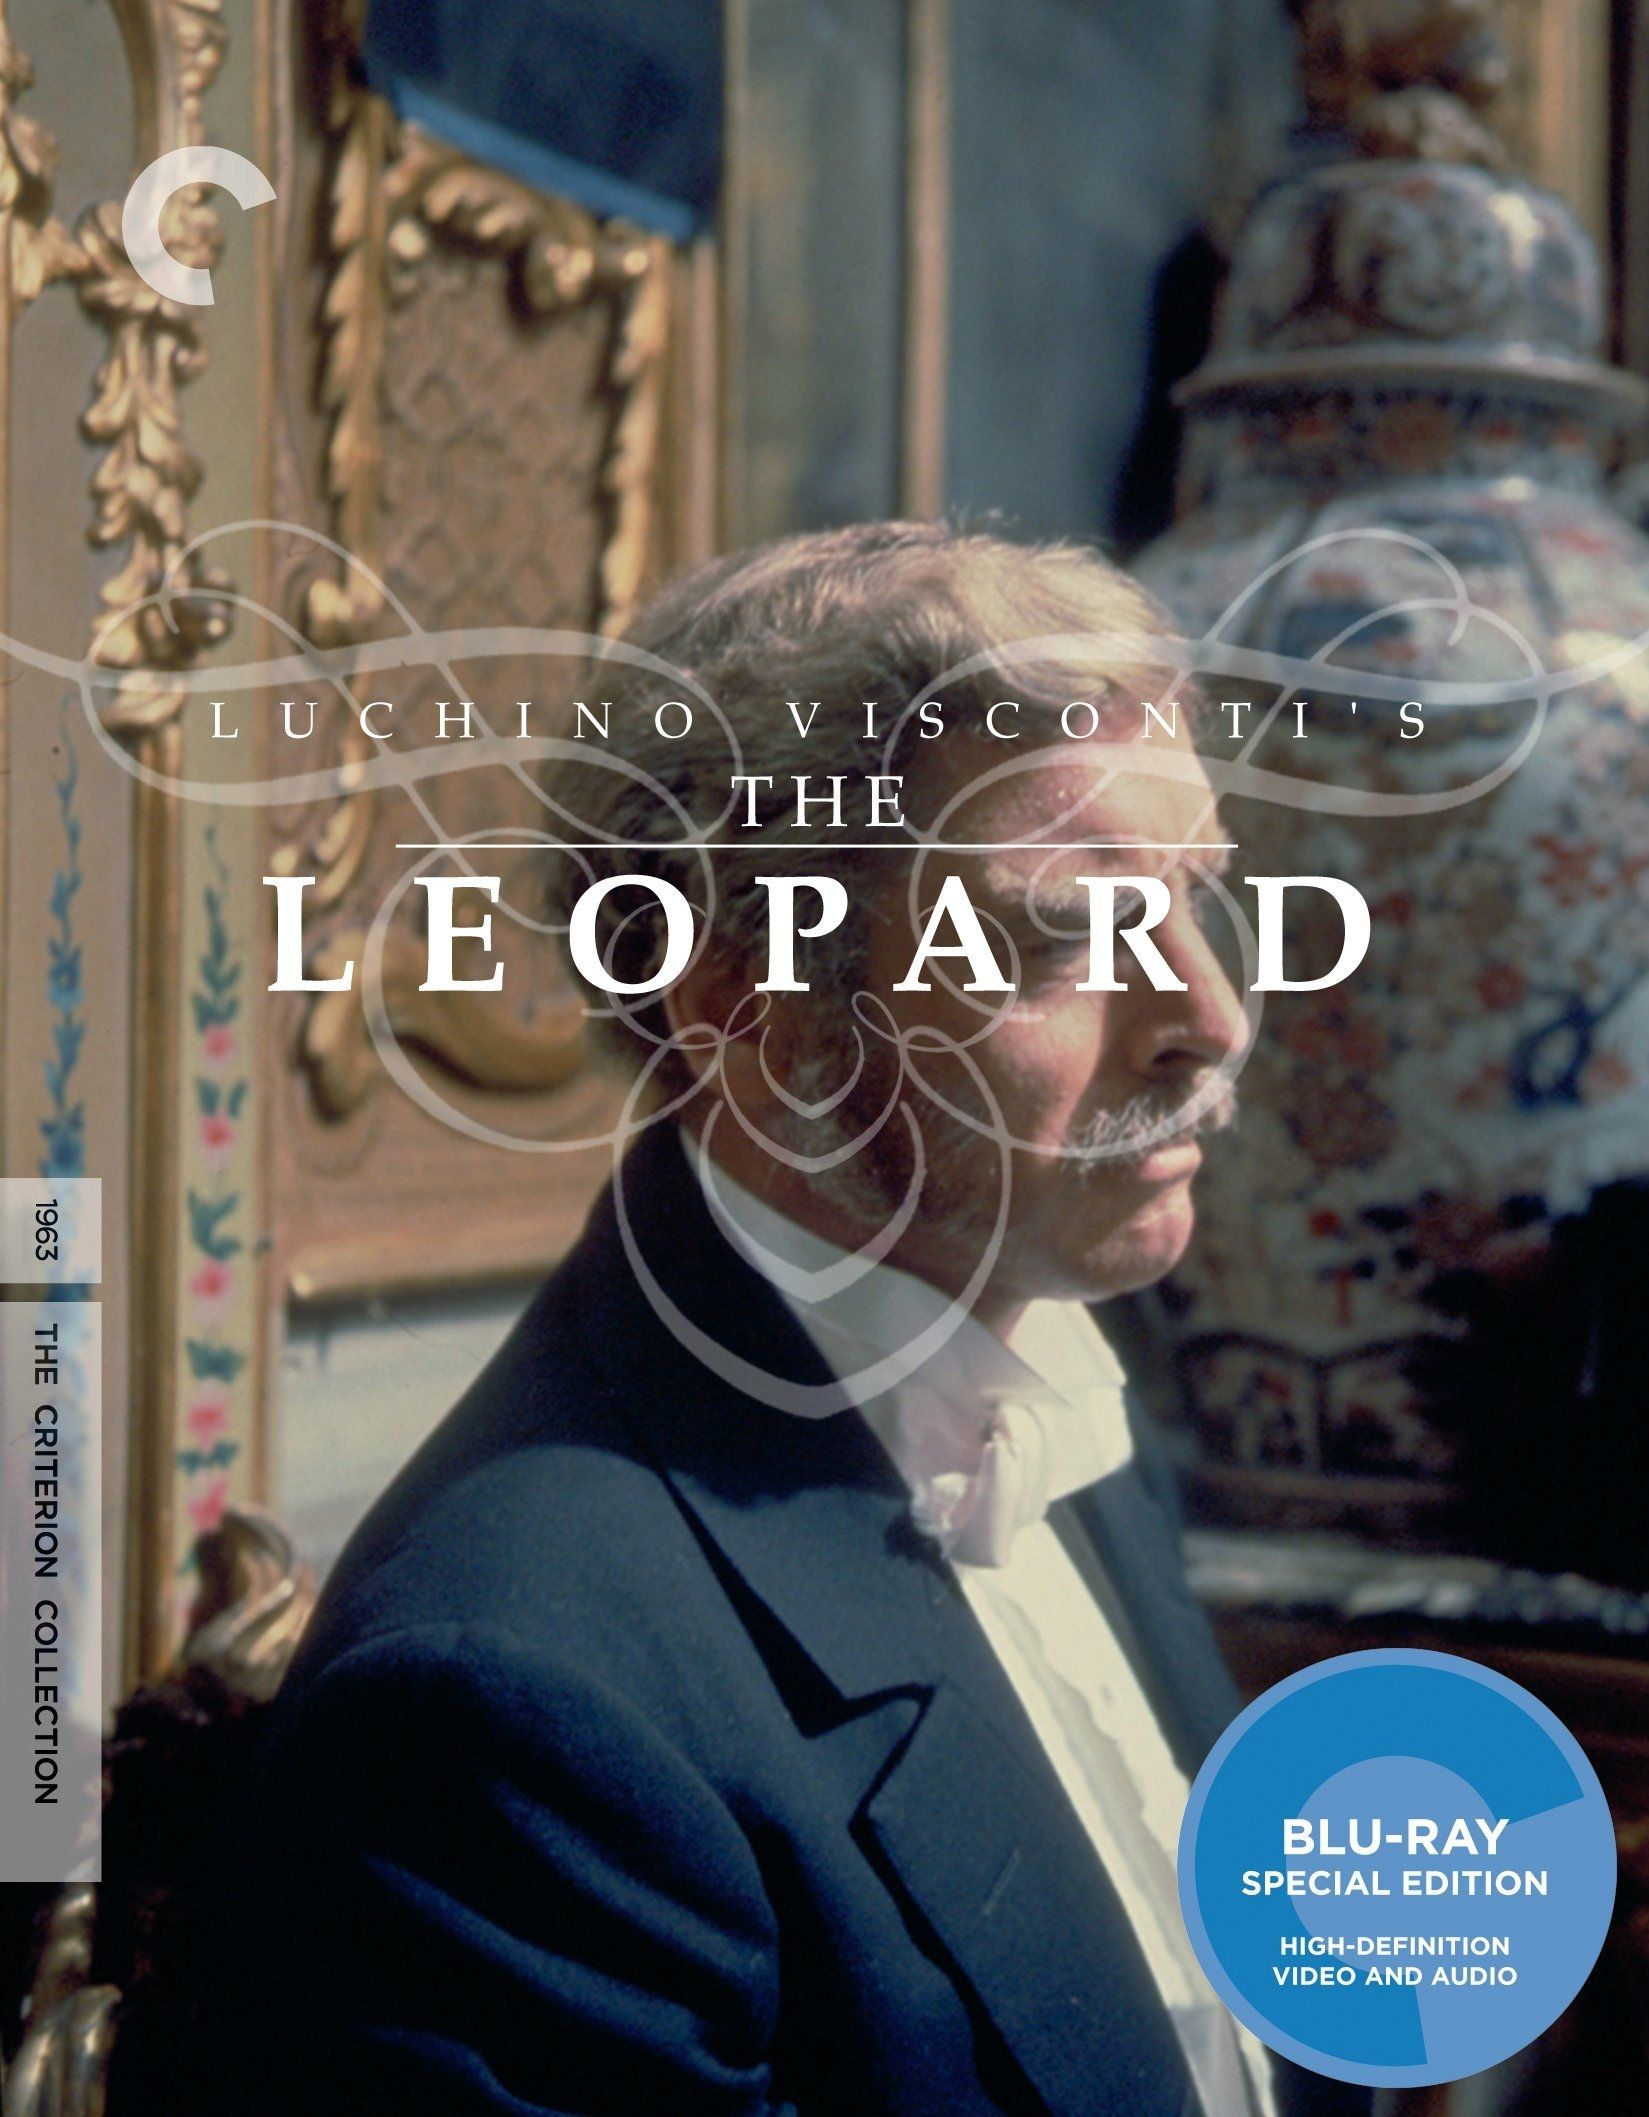 The Leopard My Criterion Pinterest Films And Movies Online High Definition Video Of Earth To Be Streamed Watch Il Gattopardo Hd Film Movie Streaming